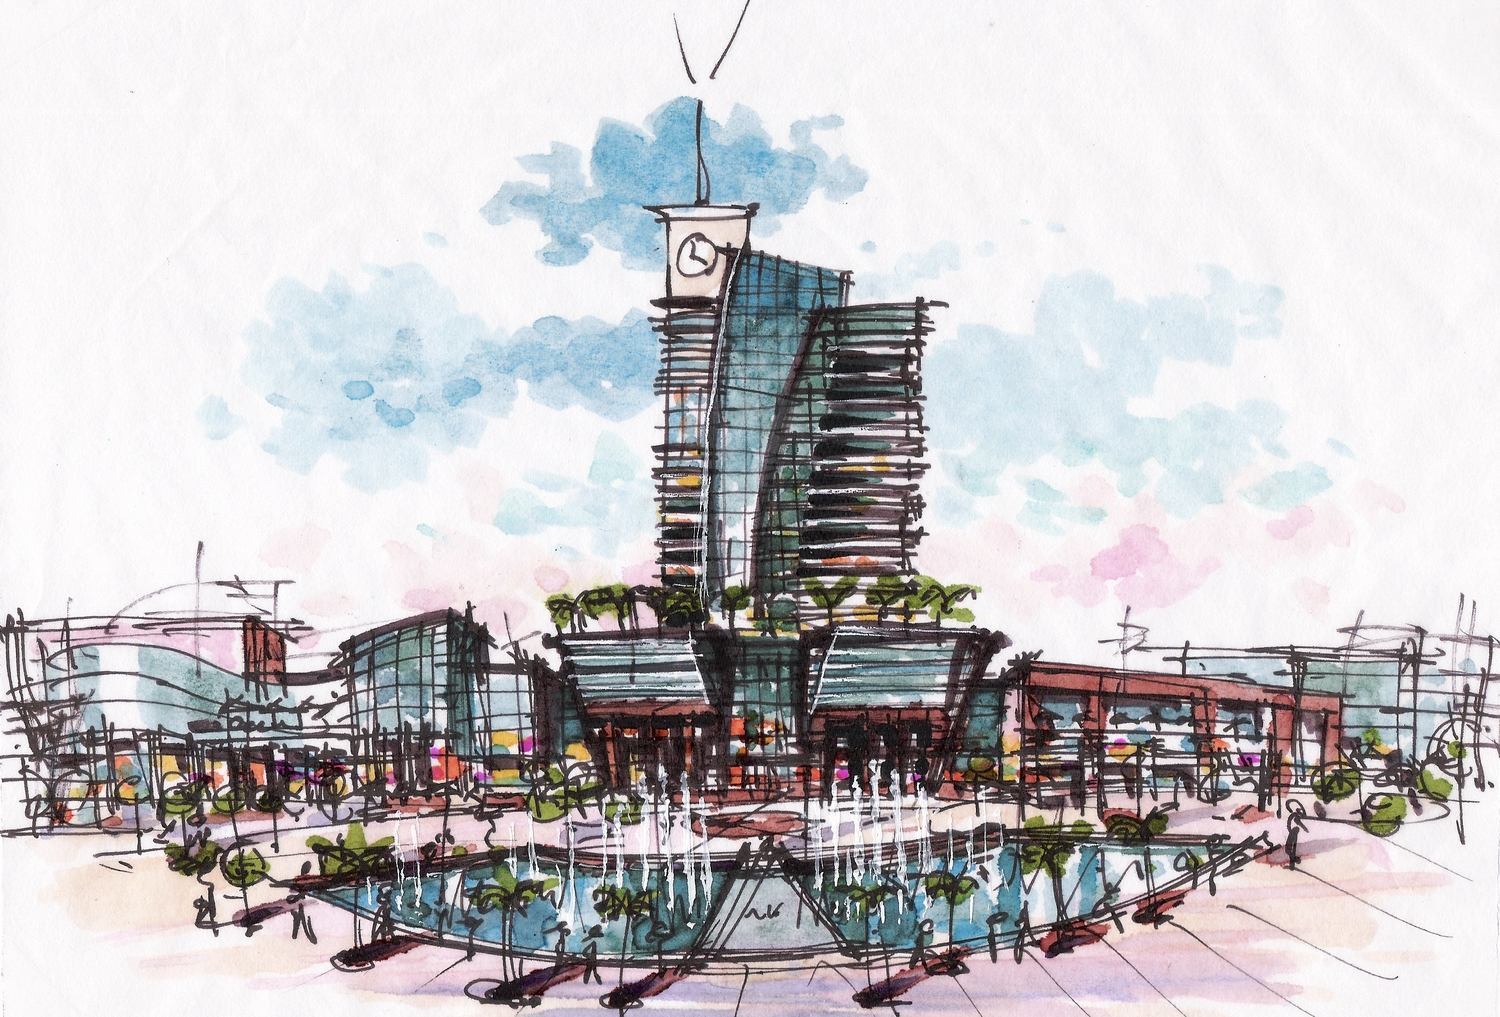 LAGOS MEDIA CITY TOWER MALL FOUNTAIN PLAZA COLOR SKETCH CROP2